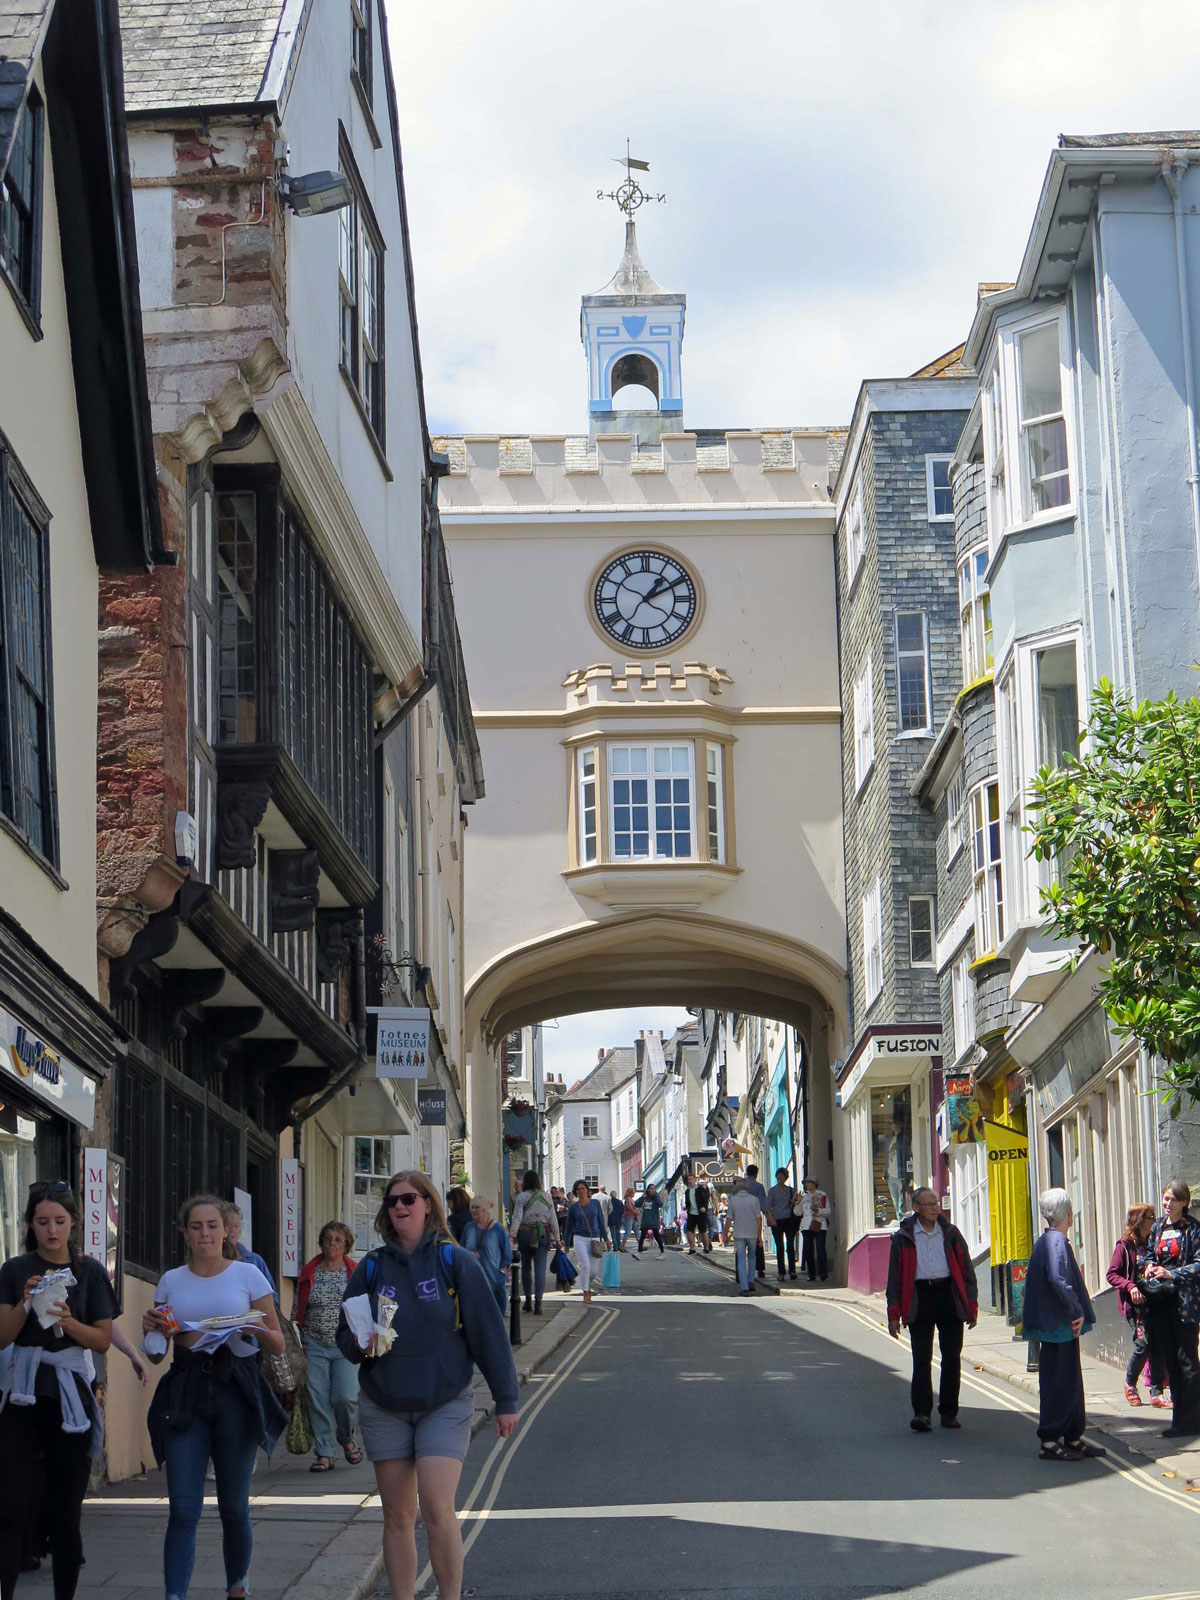 The Eastgate Arch from Fore Street